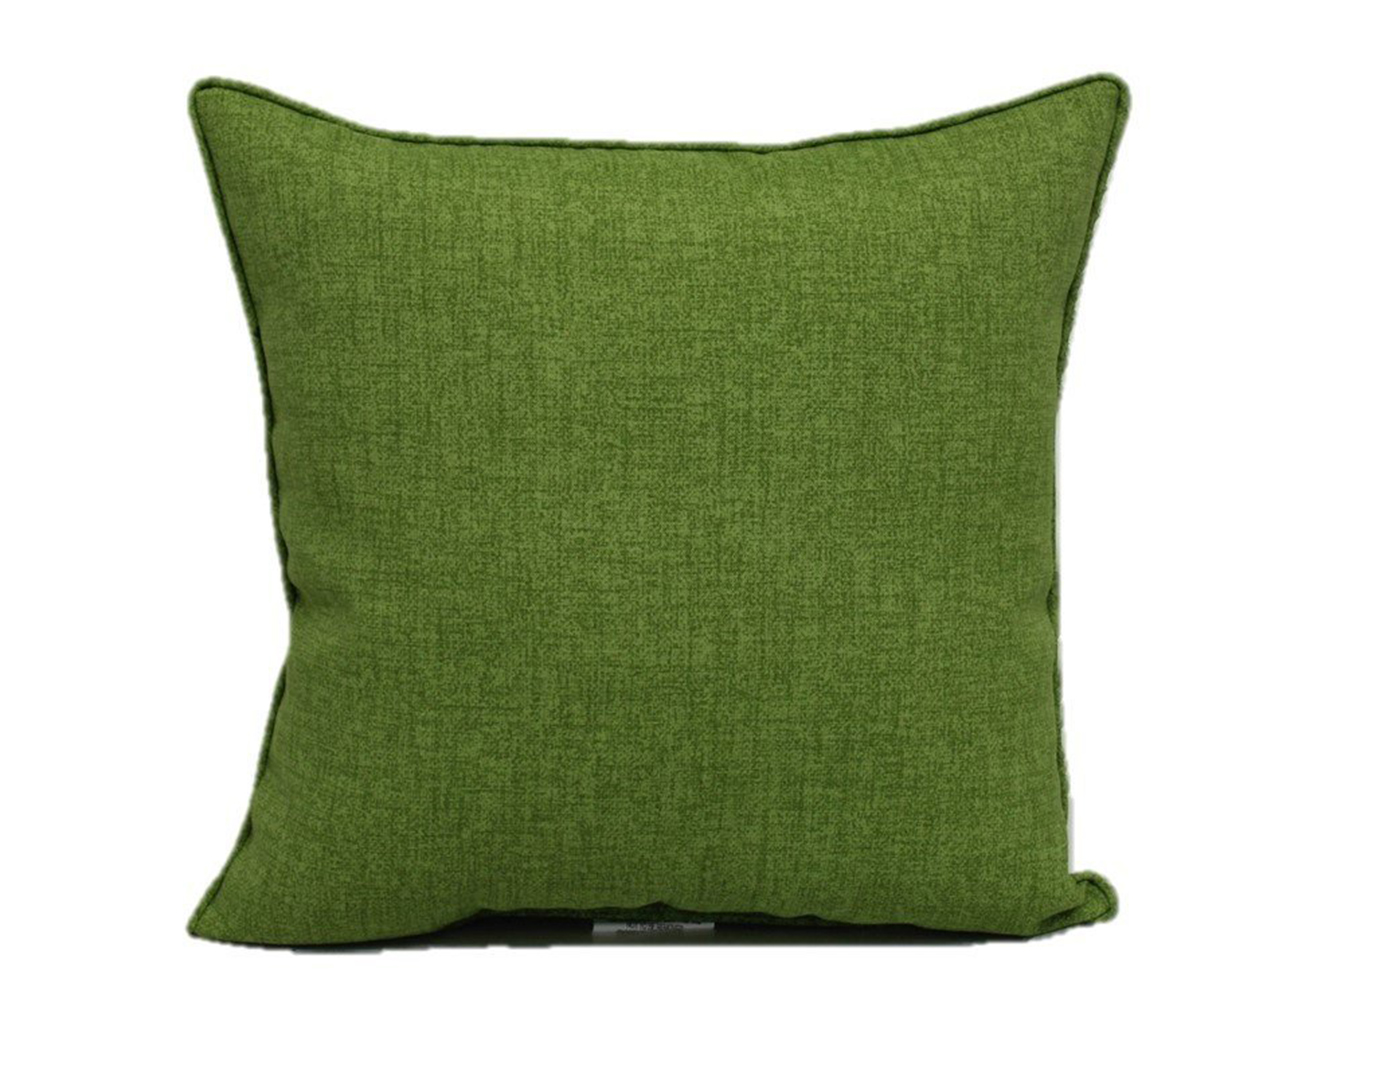 Kiwi Outdoor Pillow